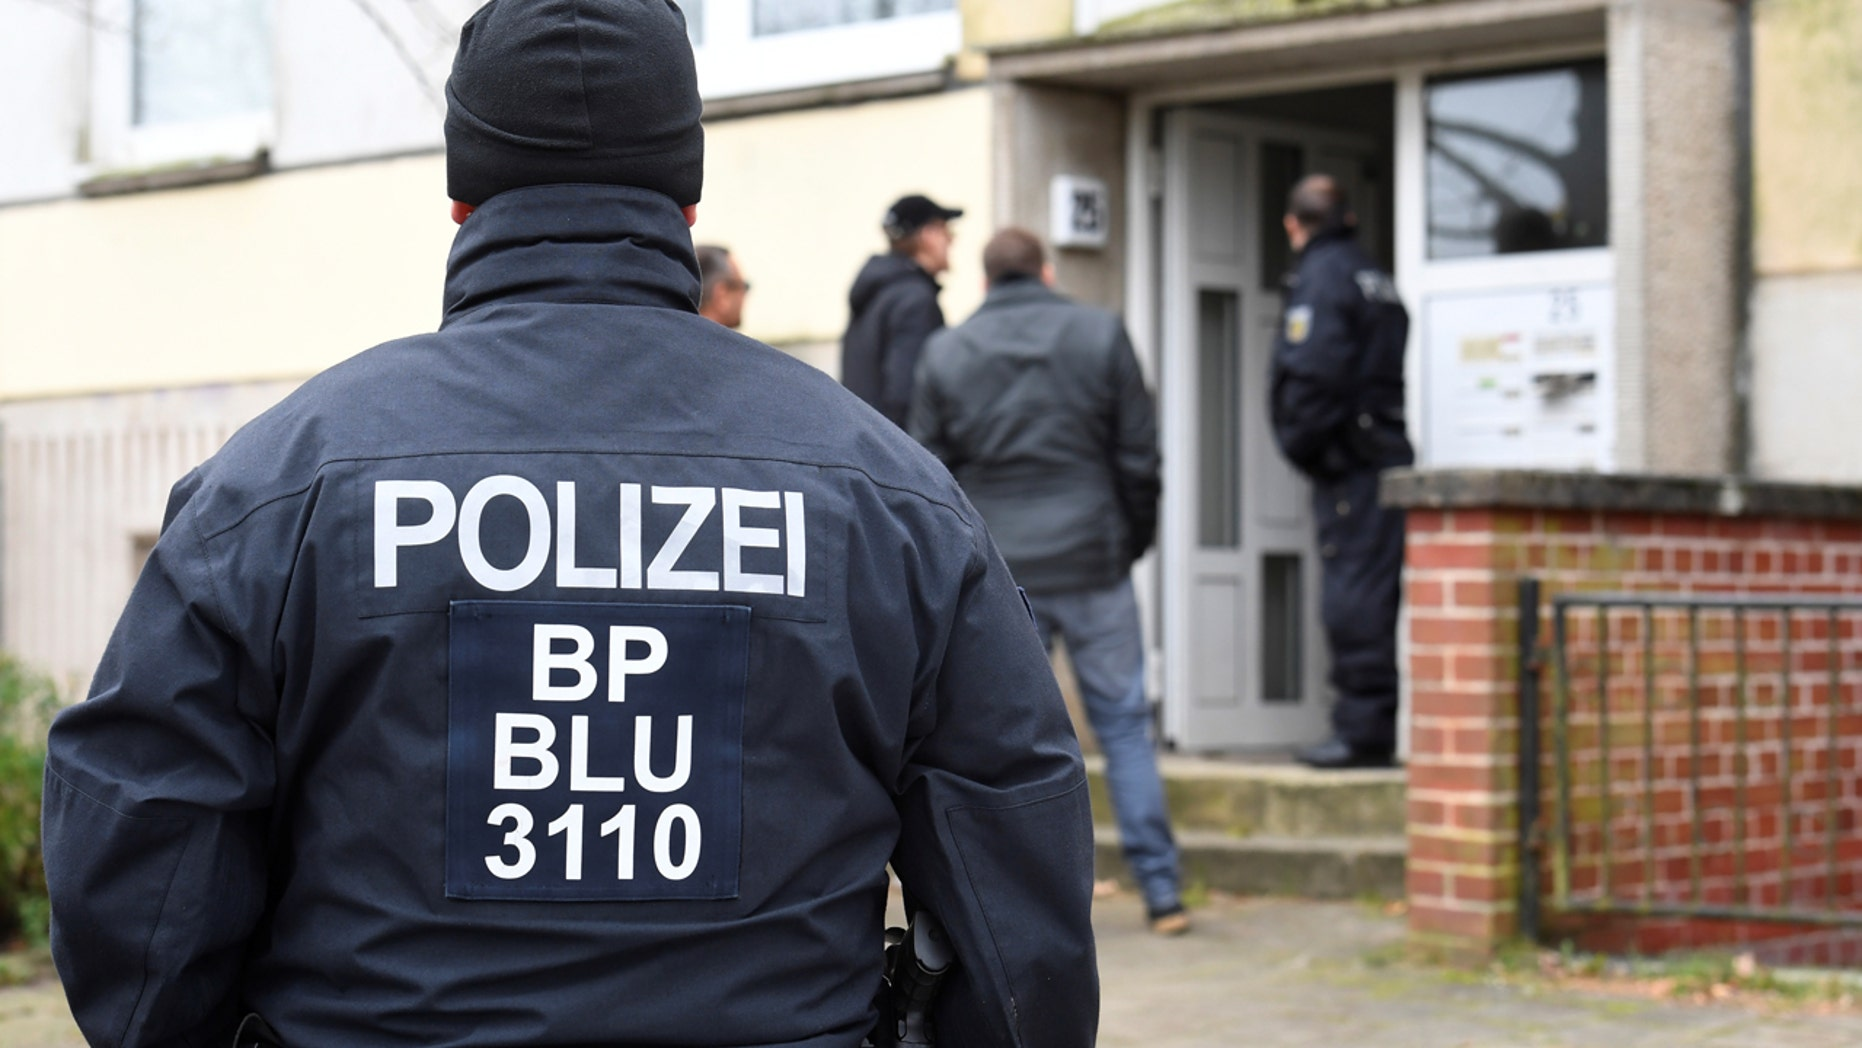 Police conduct a raid in front of a residential building in Schwerin, Germany in October.